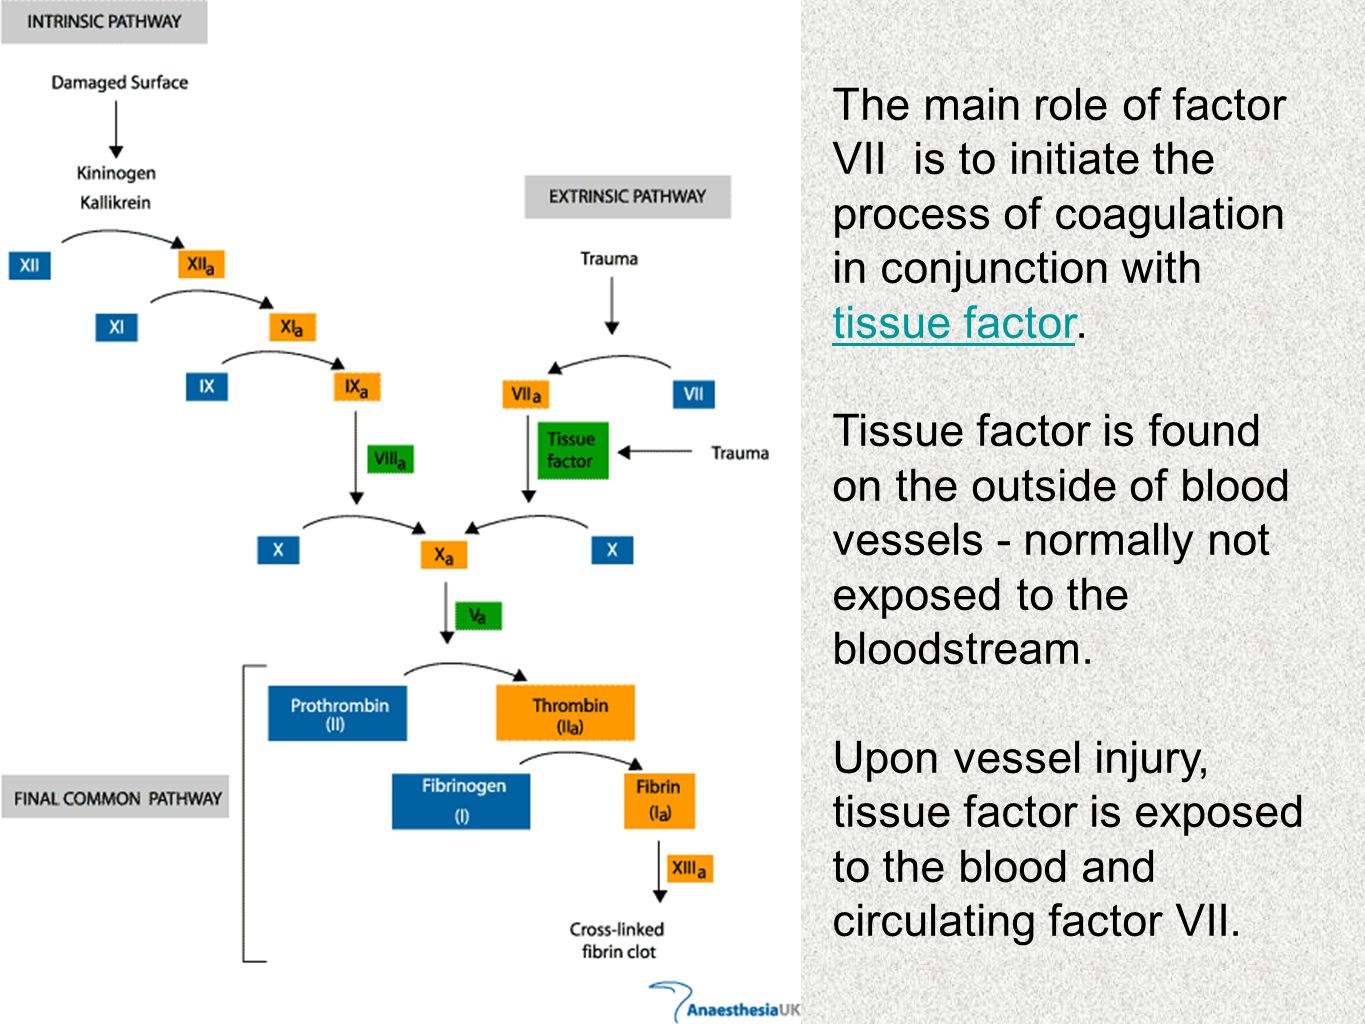 The main role of factor VII is to initiate the process of coagulation in conjunction with tissue factor.